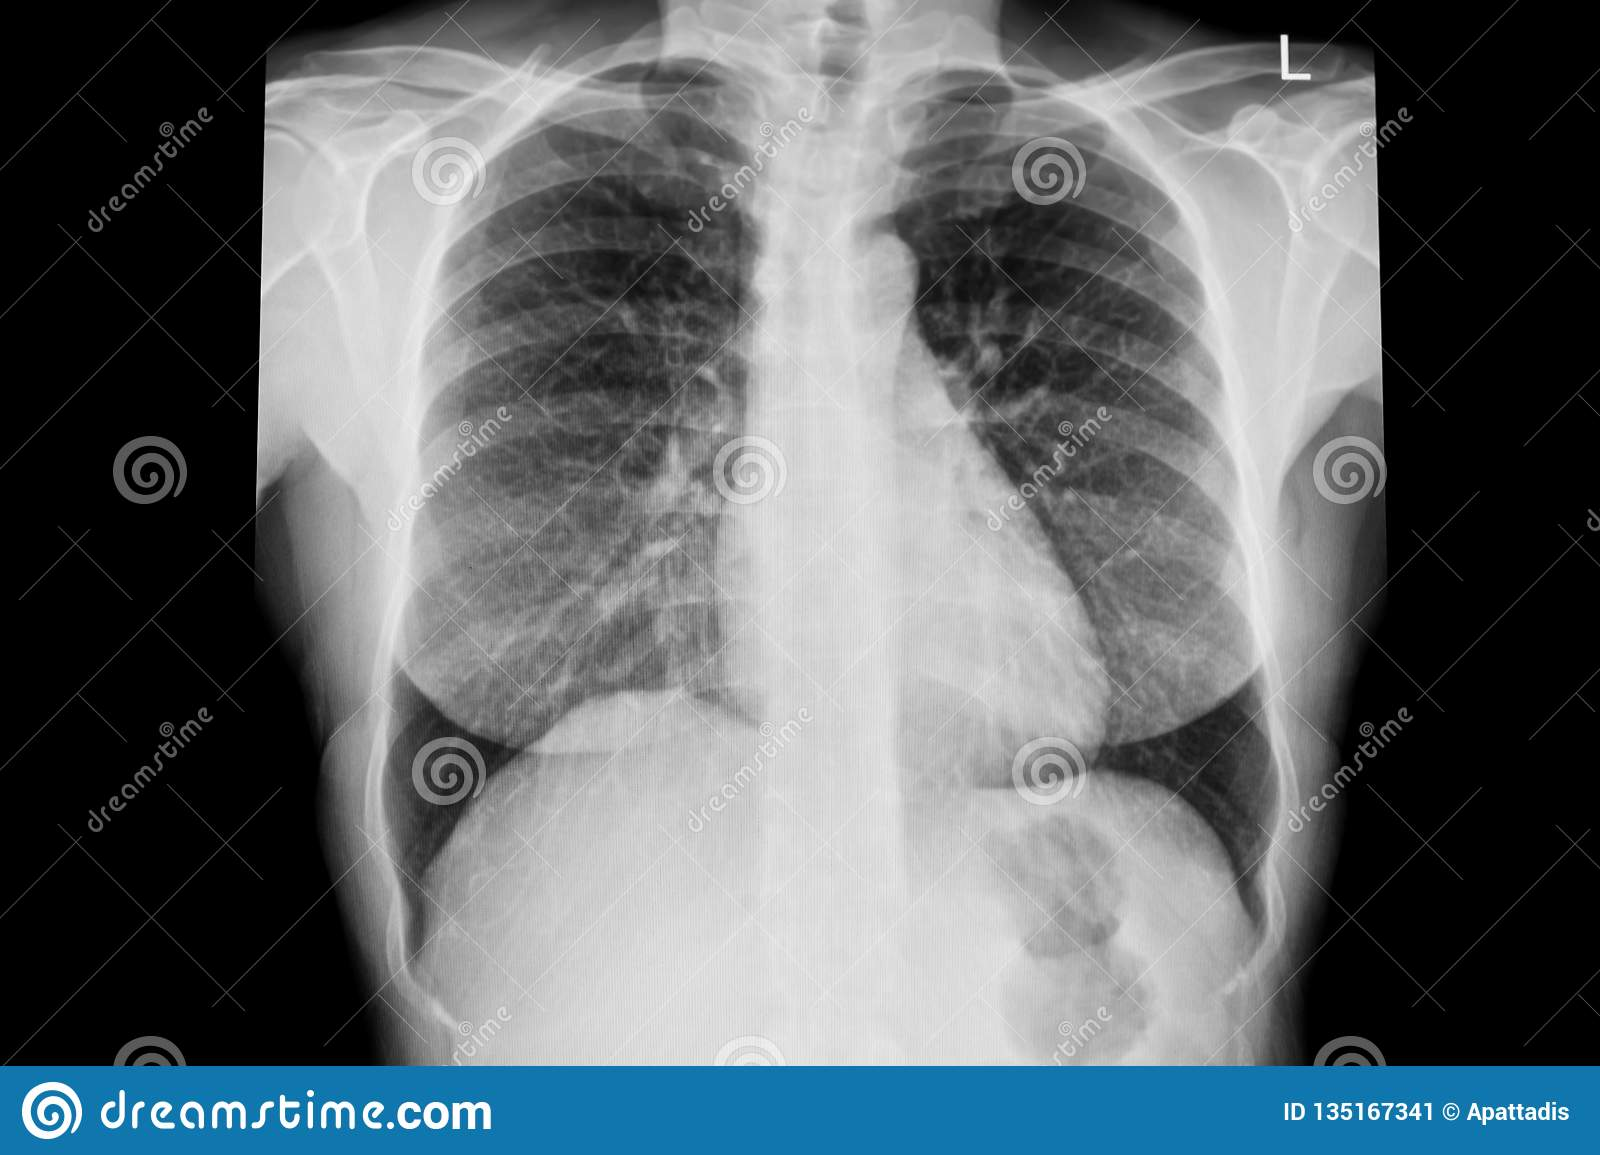 Normal chest x-ray image demonstrated heart,lungs,ribs,bones and muscles